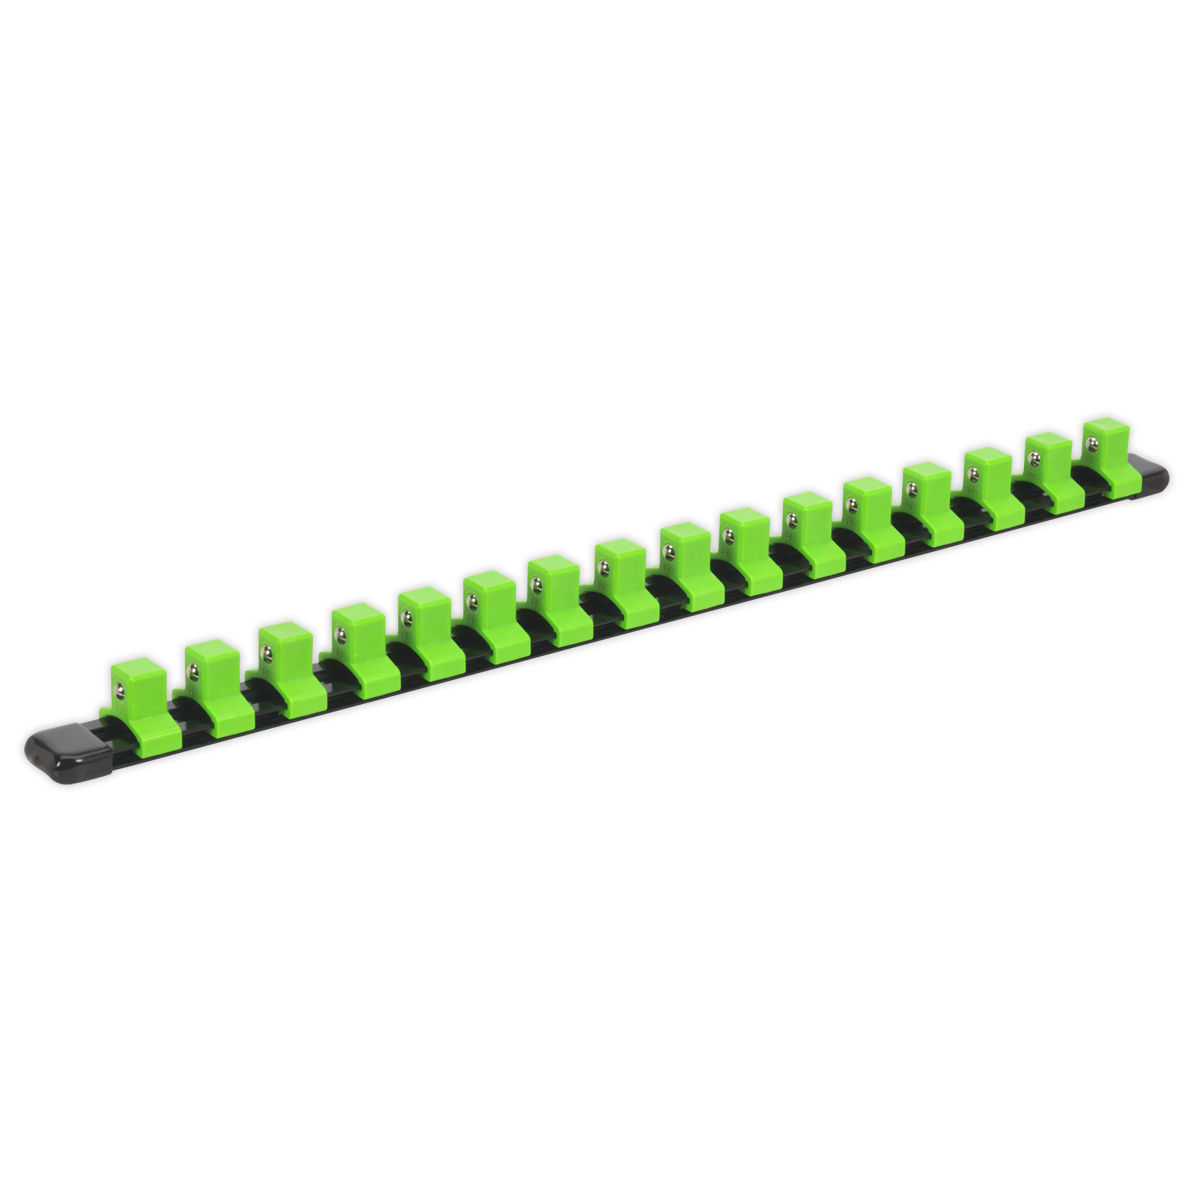 """Socket Retaining Rail with 16 Clips 1/2""""Sq Drive - Hi-Vis Green   Aluminium socket rail with hi-vis green nylon clips.   toolforce.ie"""